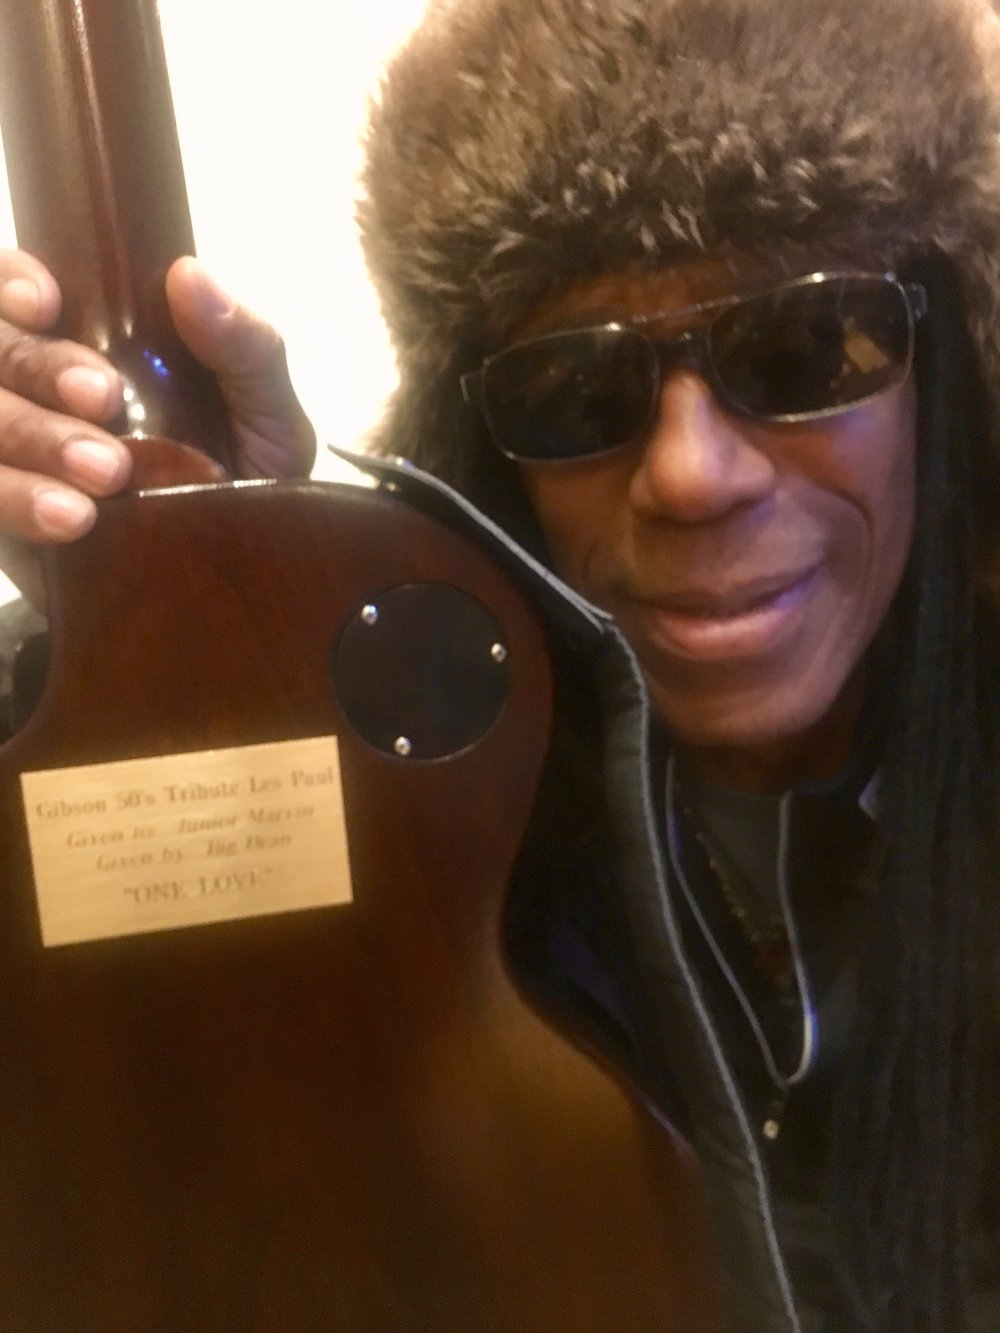 Julian Junior Marvin with the engraved message on the back of his gifted guitar from Dean Rubenstein.